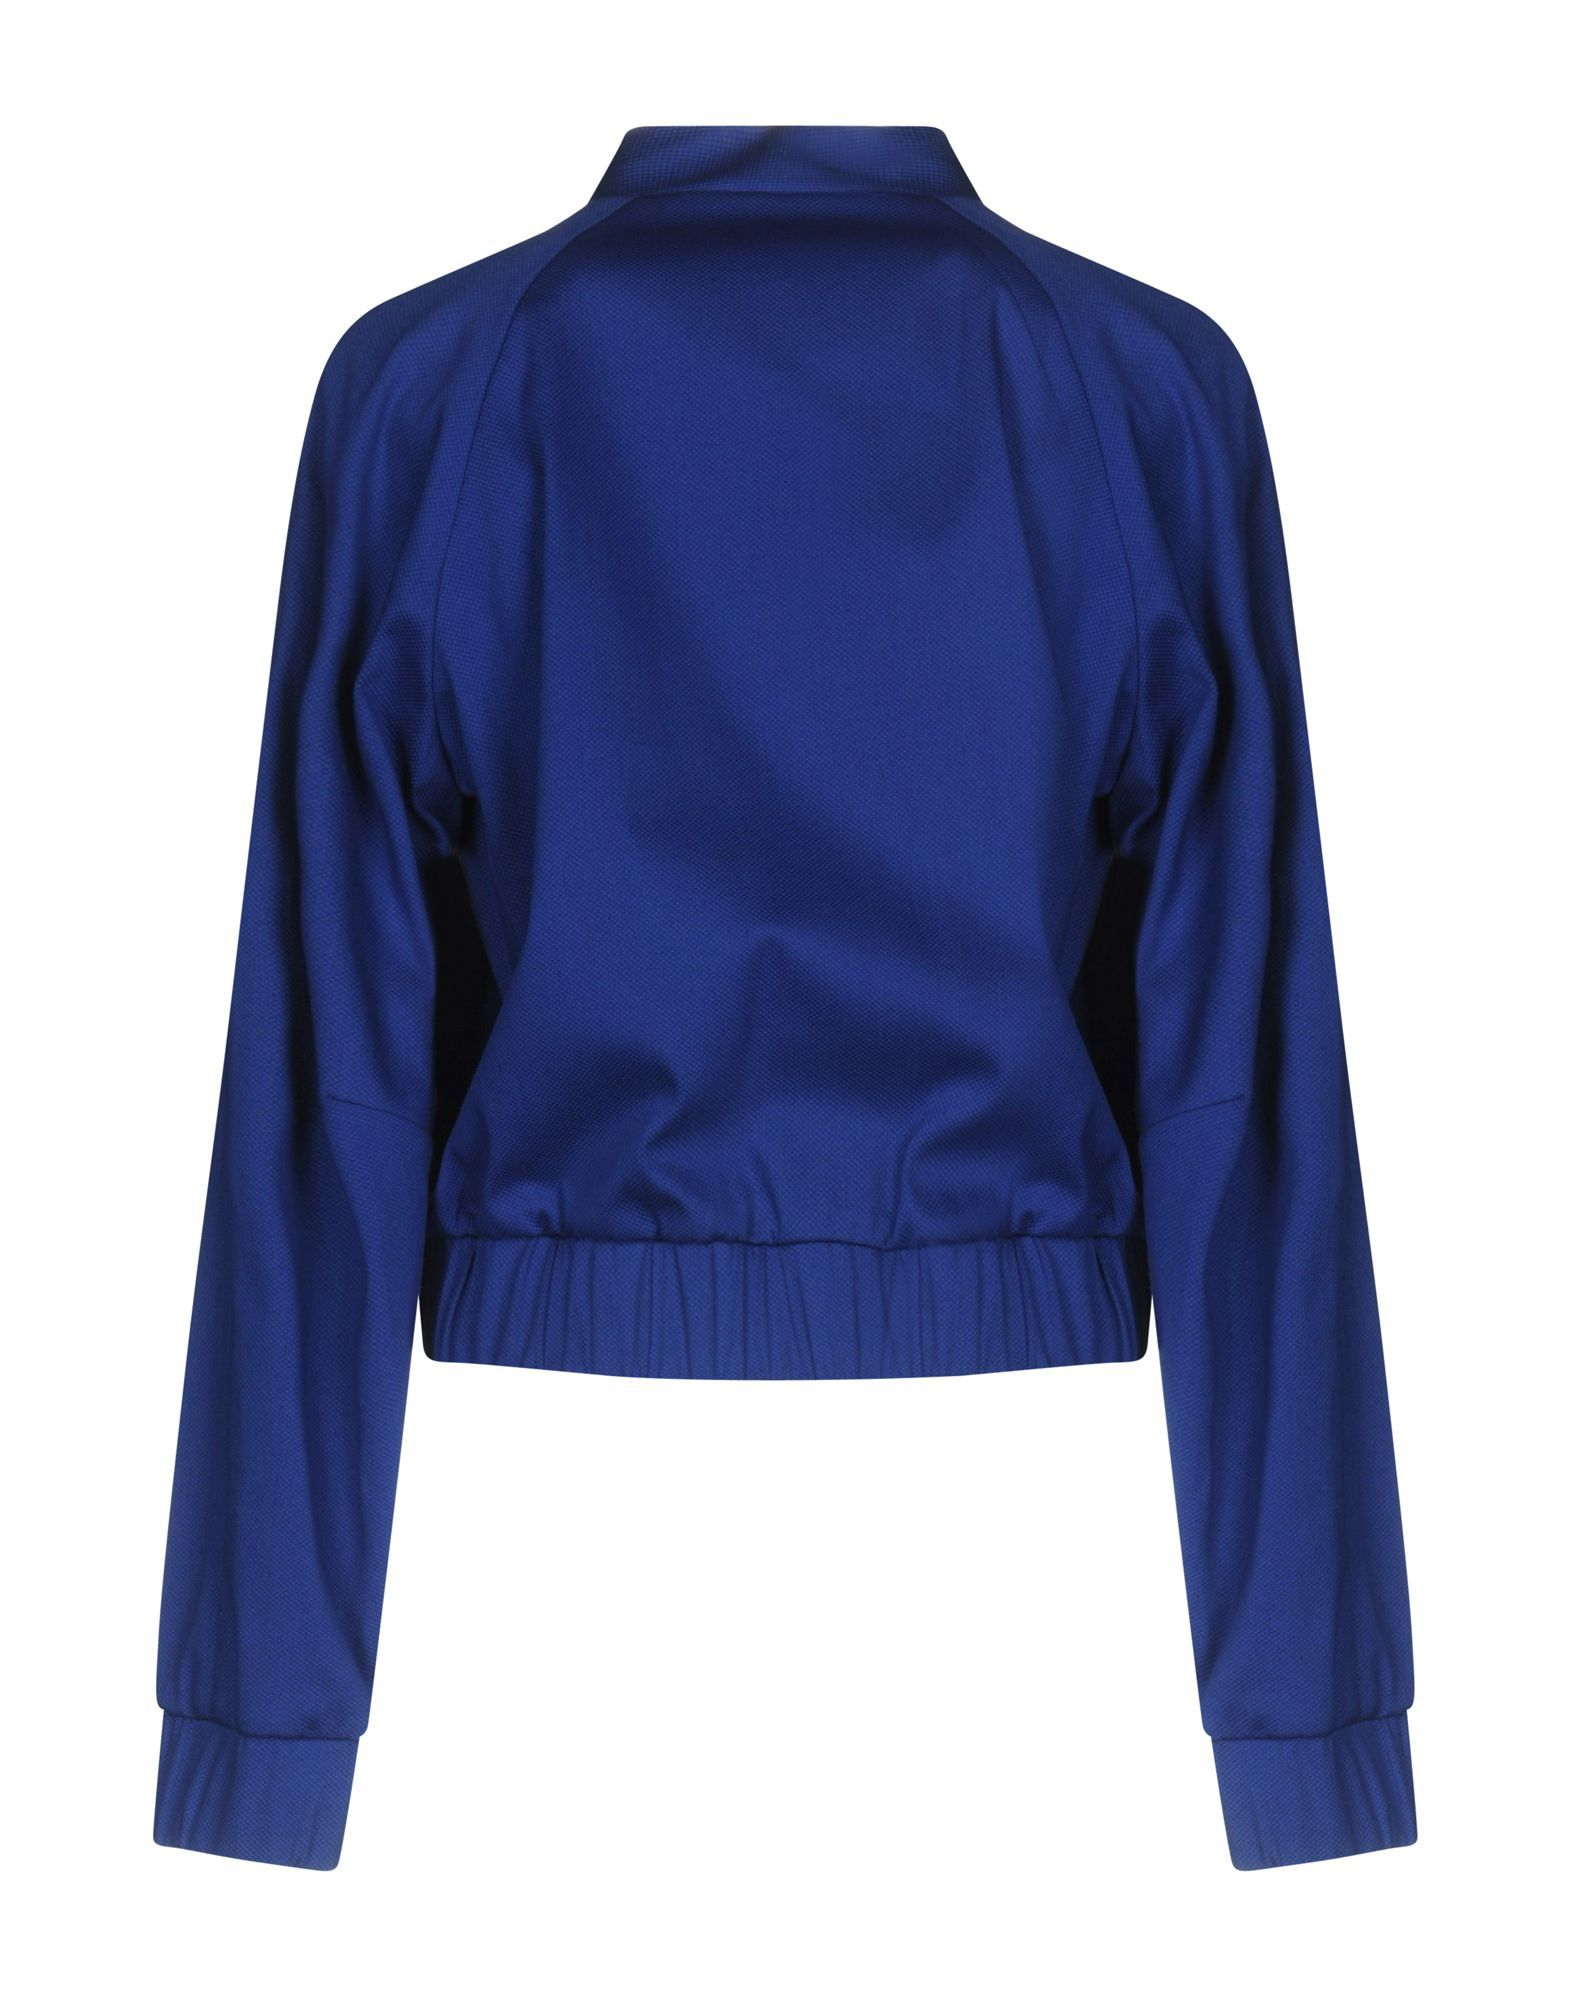 P.A.R.O.S.H. Blue Cotton Bomber Jacket